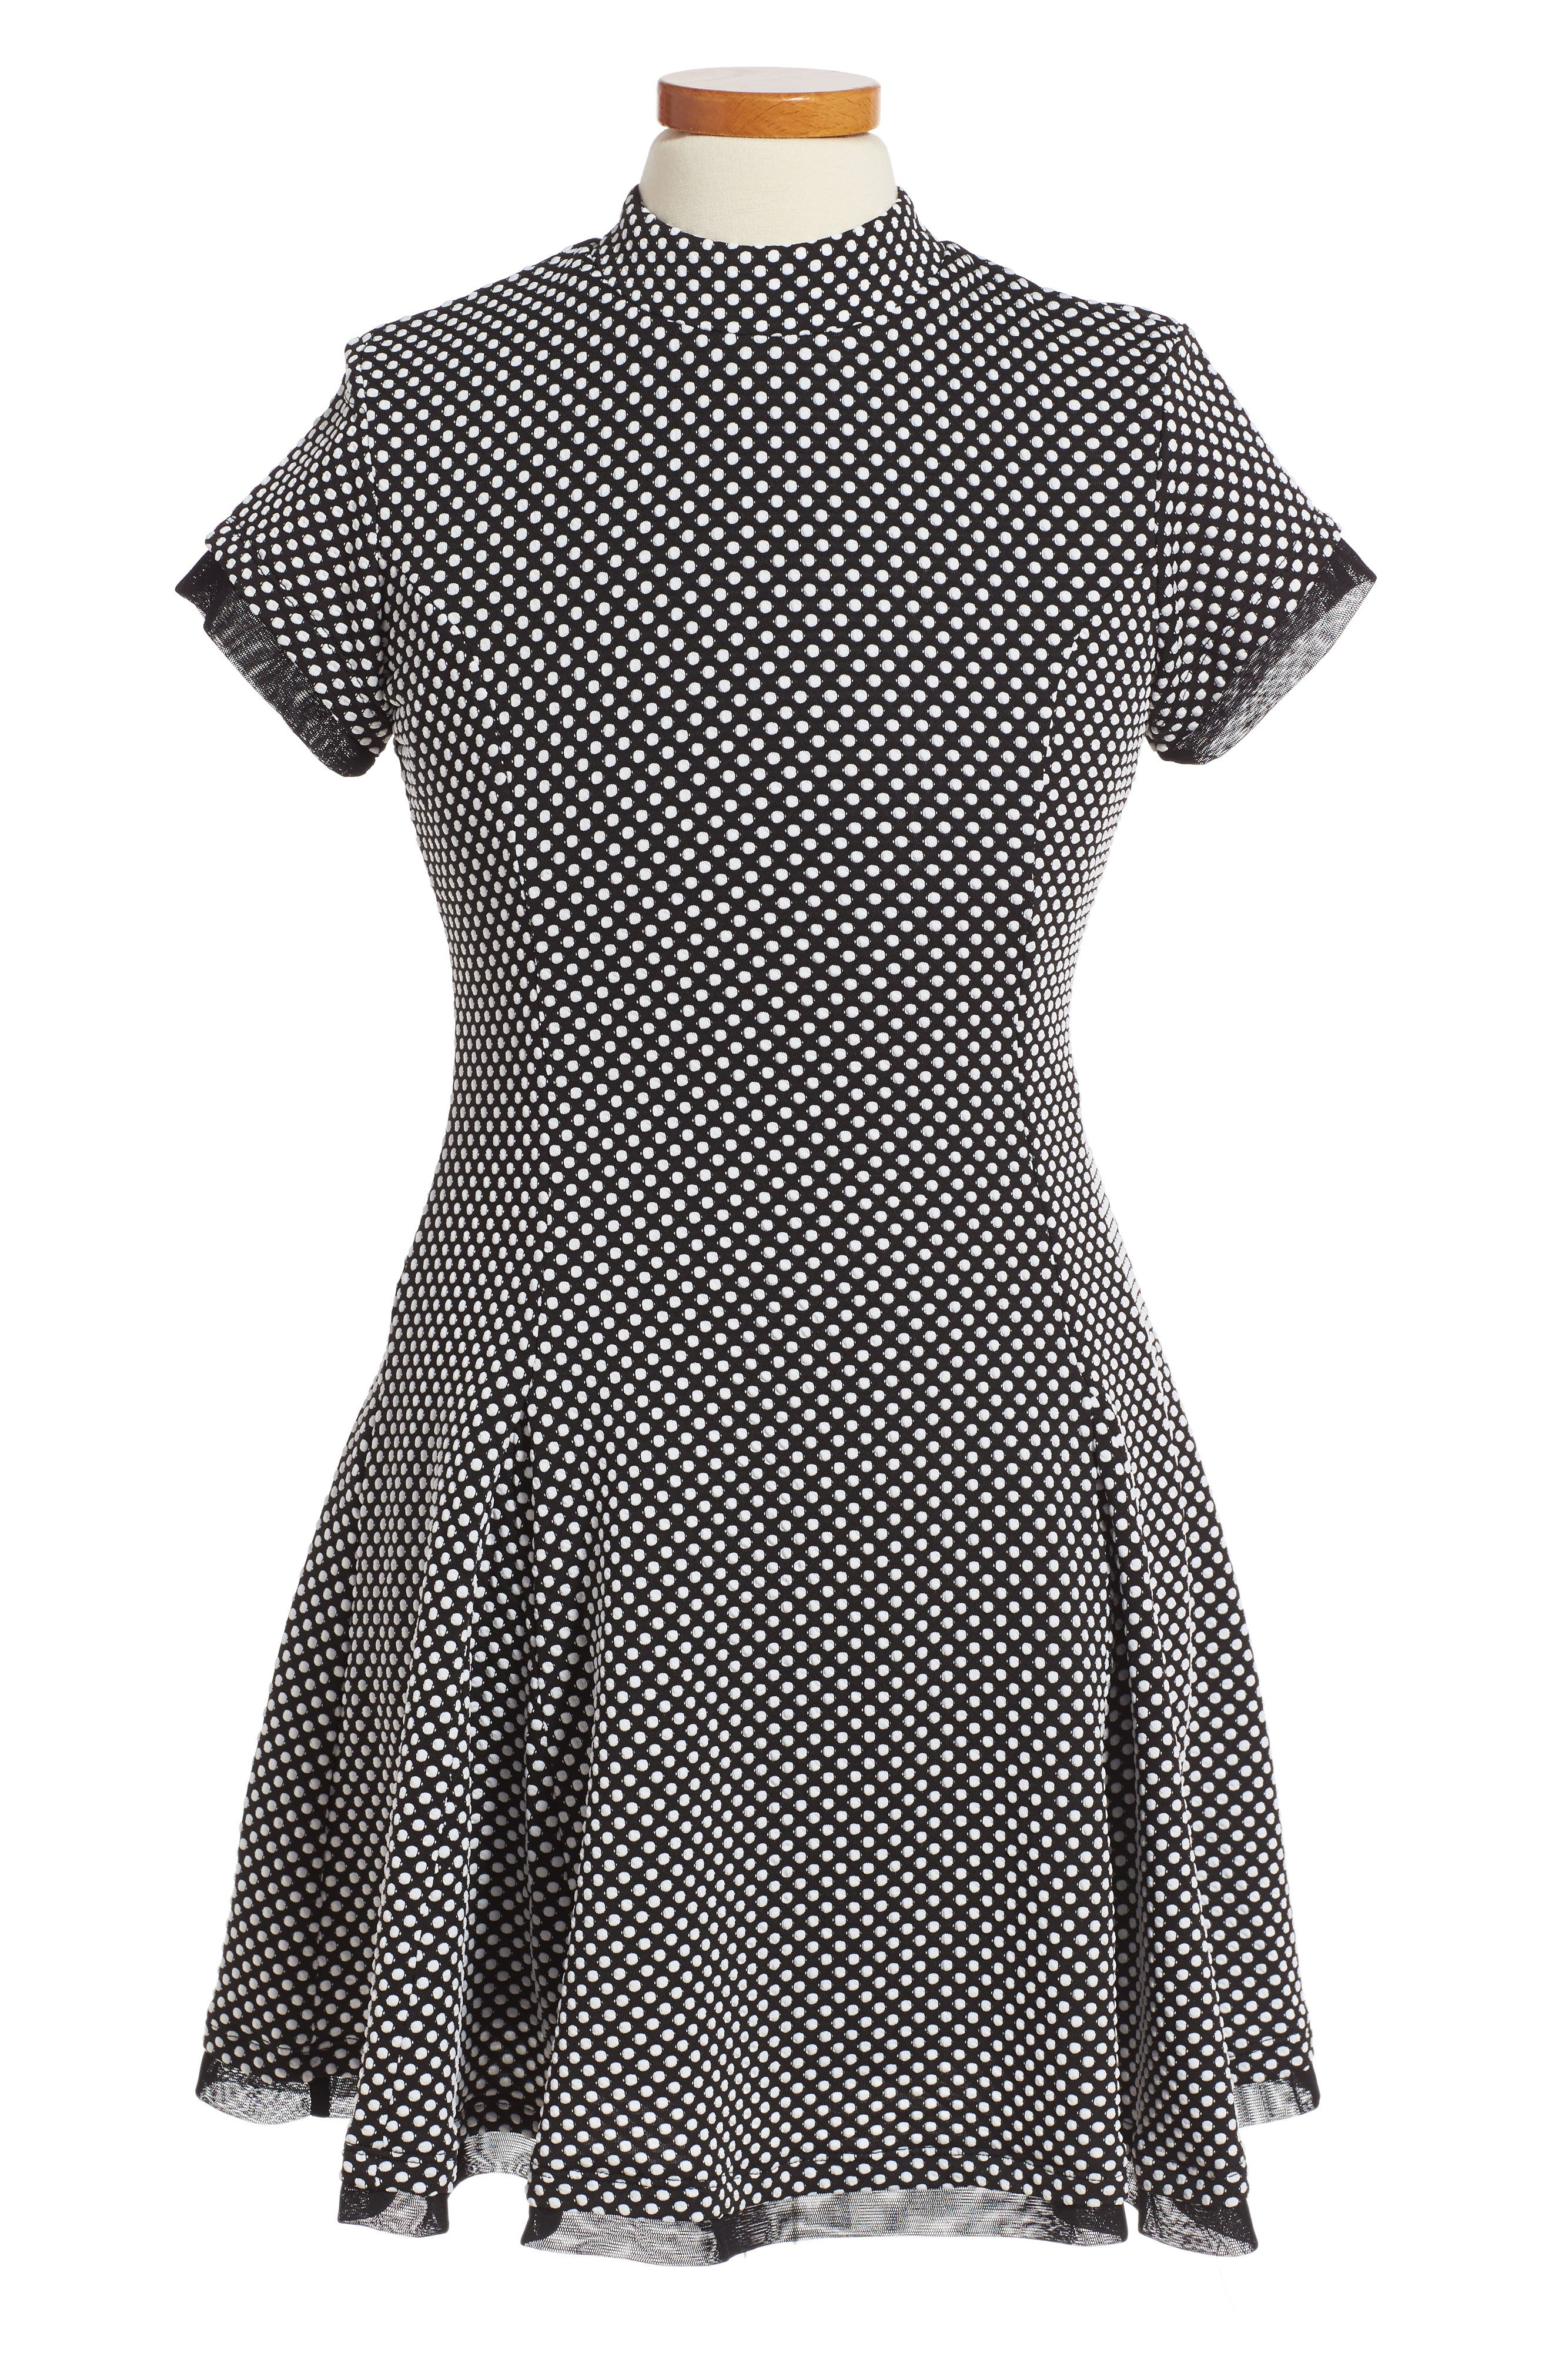 Elisa B Polka Dot Skater Dress (Big Girls)